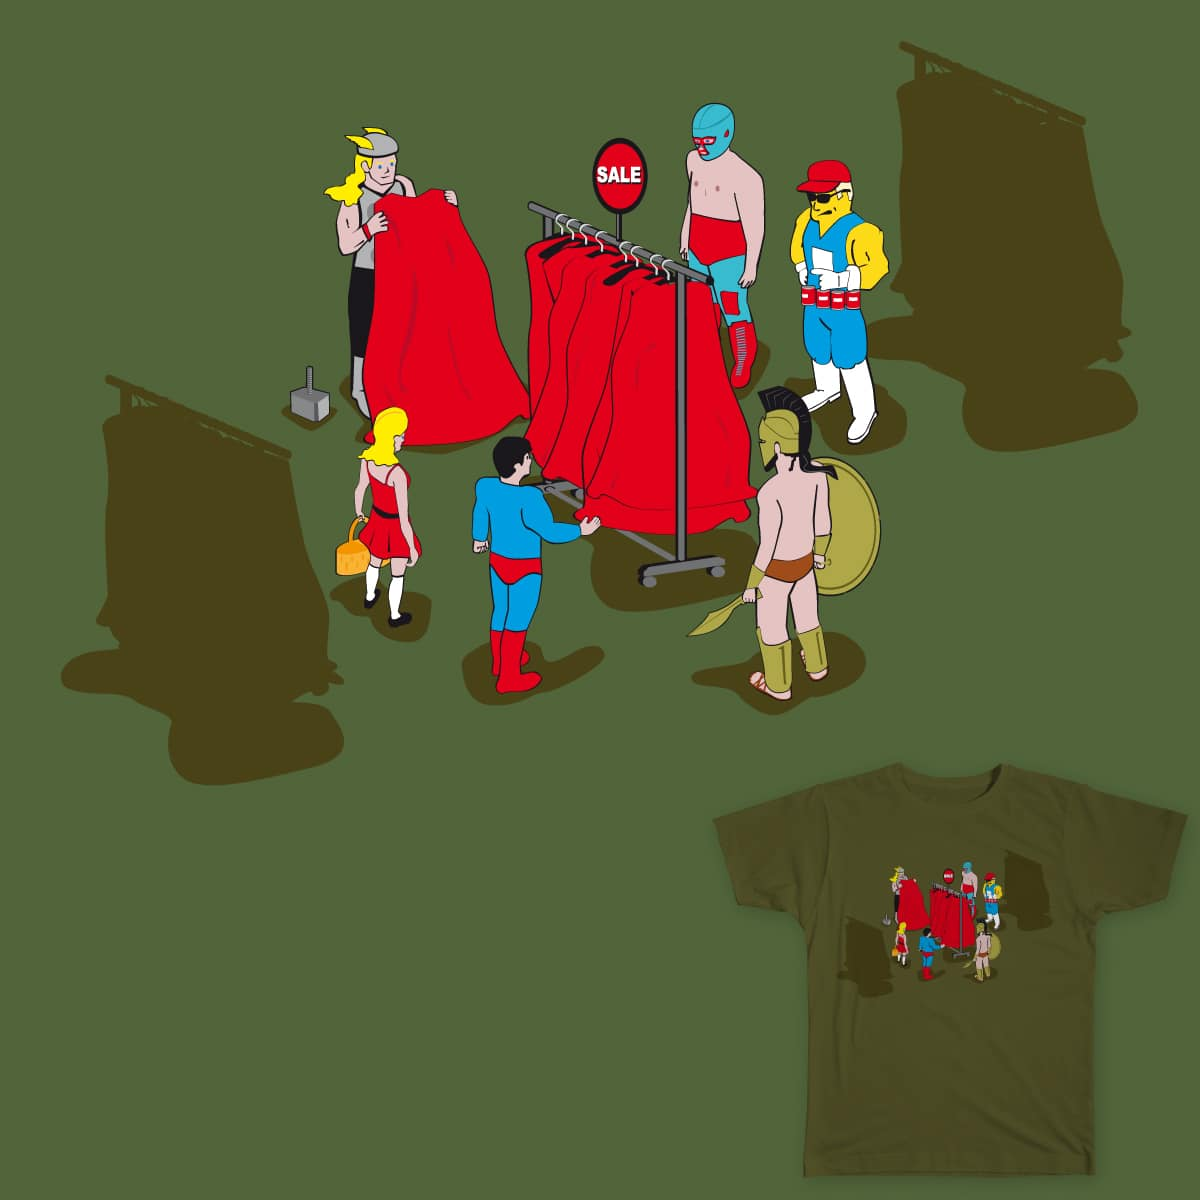 Super Offer Supermarket by SERONORES on Threadless